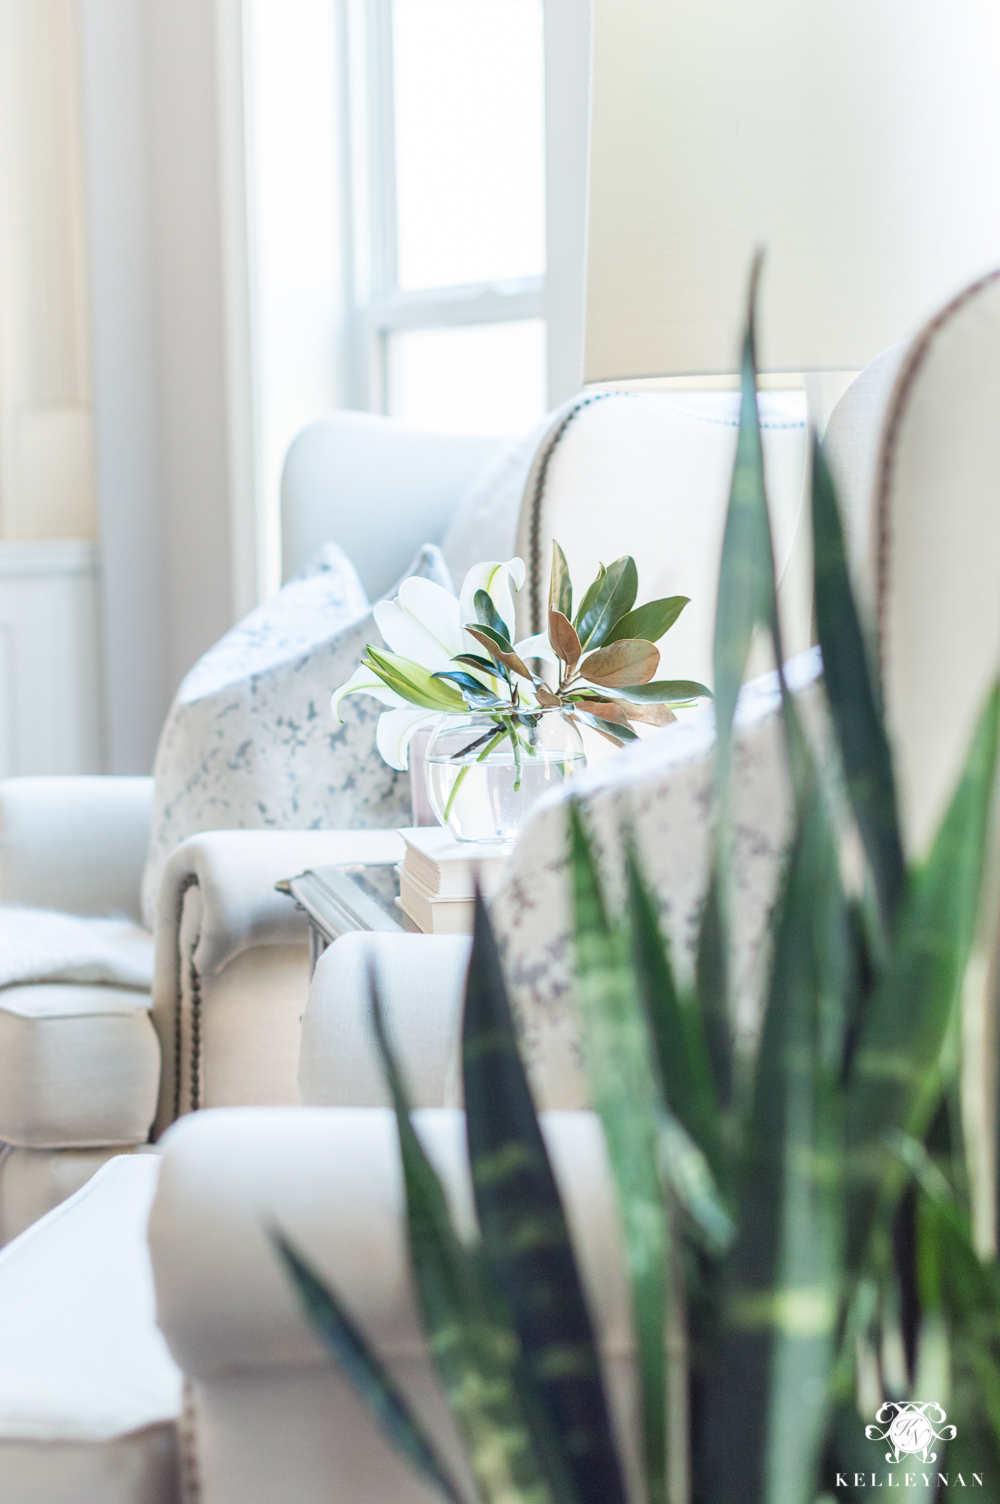 Styling wingback chairs for winter in the living room